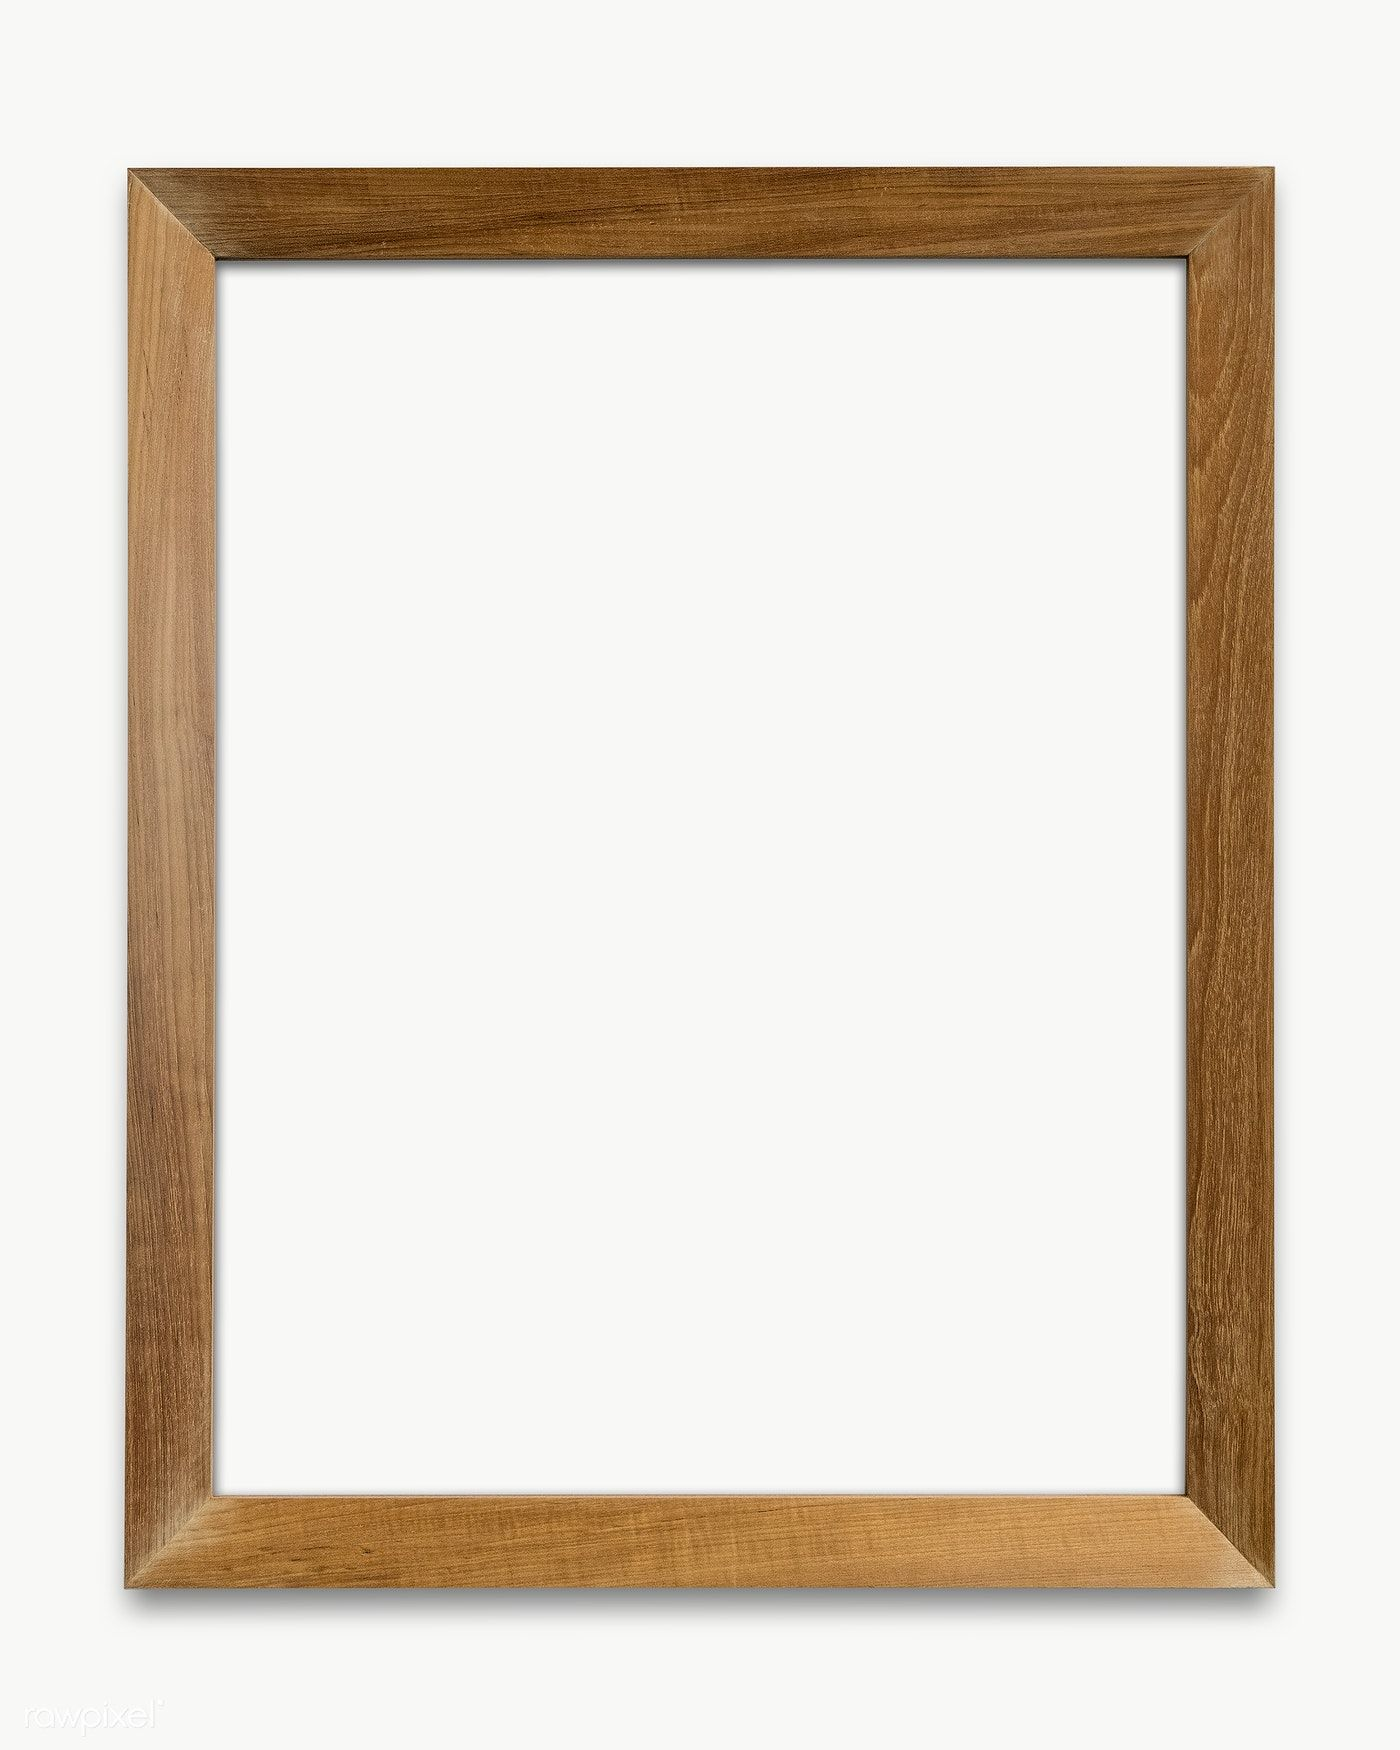 Wooden Picture Frame Mockup Transparent Png Premium Image By Rawpixel Com Picture Frames Wooden Picture Wood Photo Frame